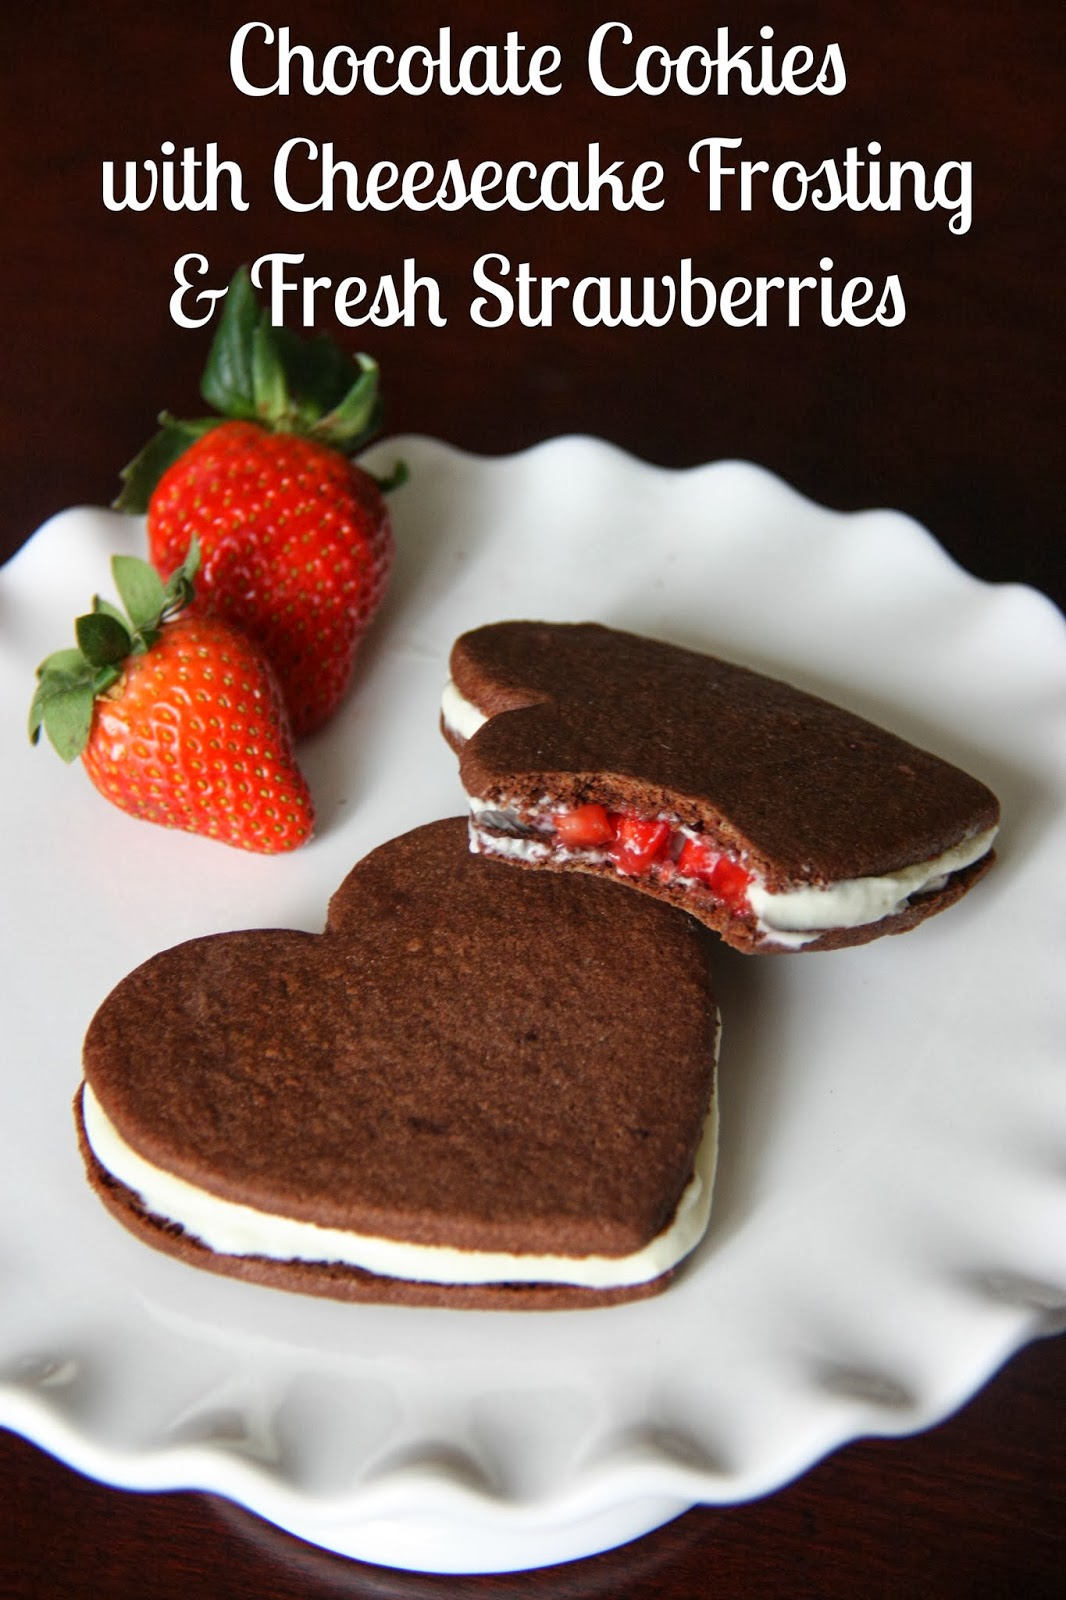 Chocolate Cookies with Cheesecake Frosting & Fresh Strawberries